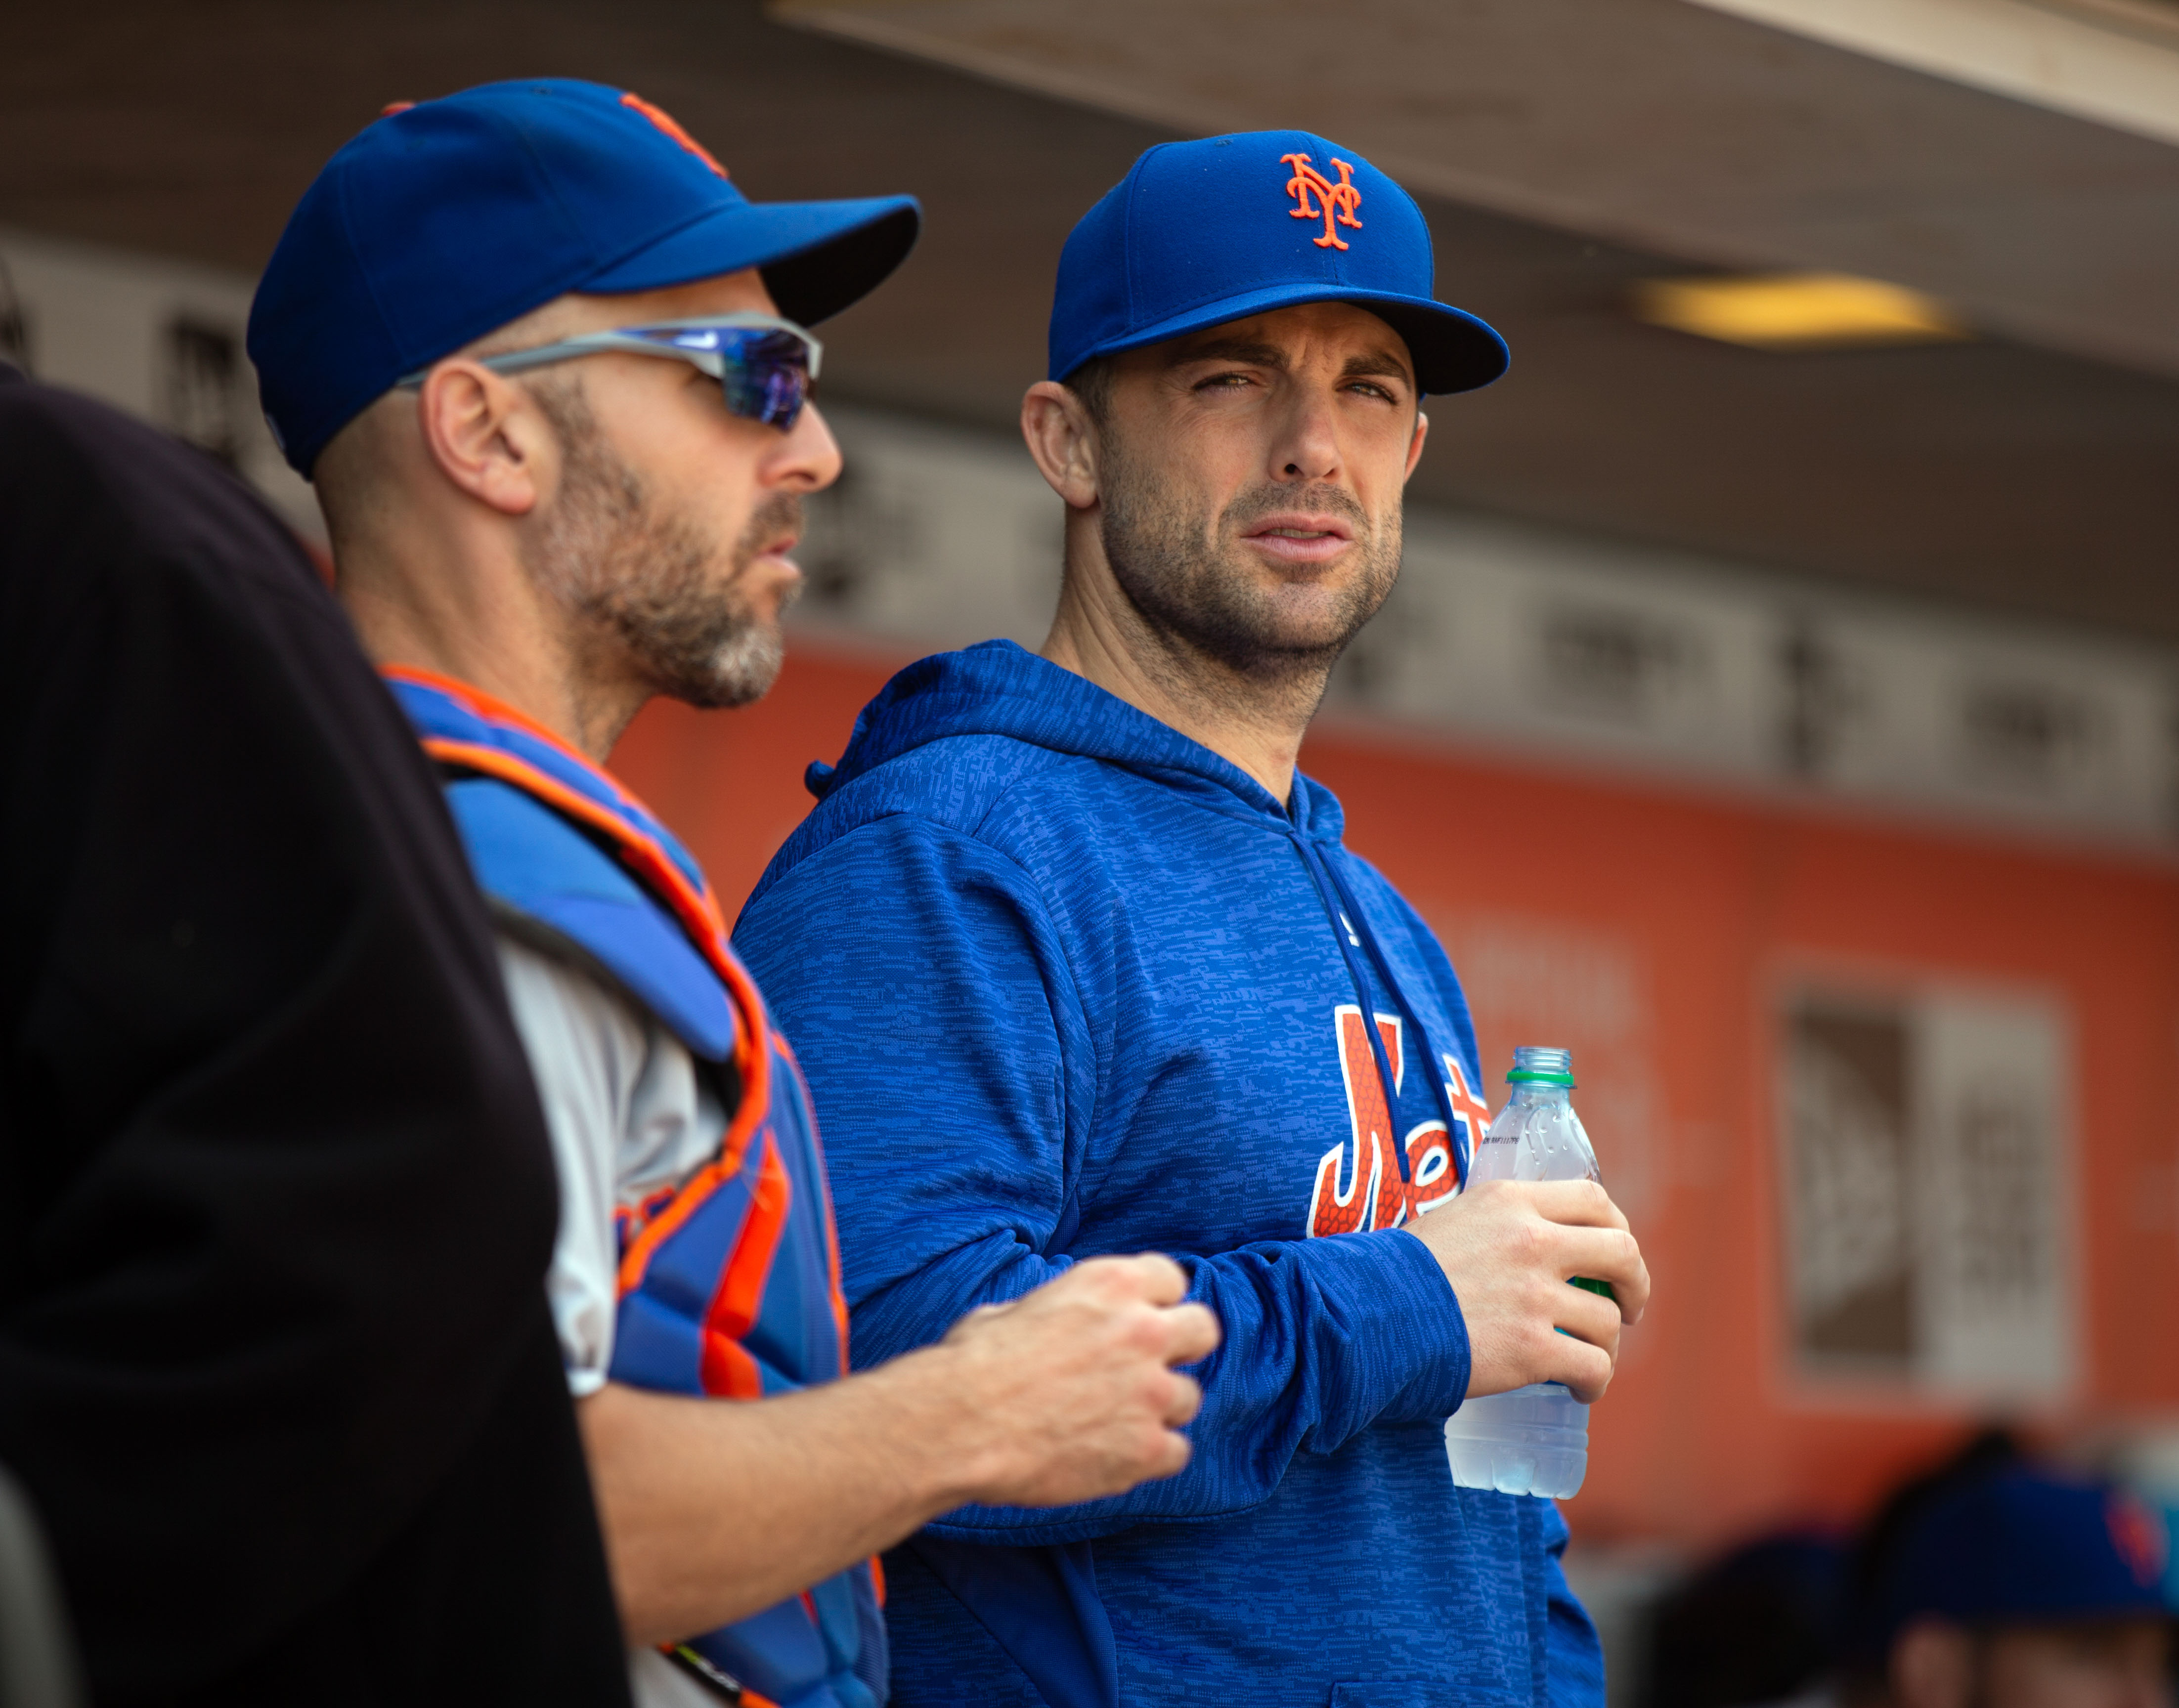 Report: New York Mets Want David Wright To Be A Full Time Player Upon Return